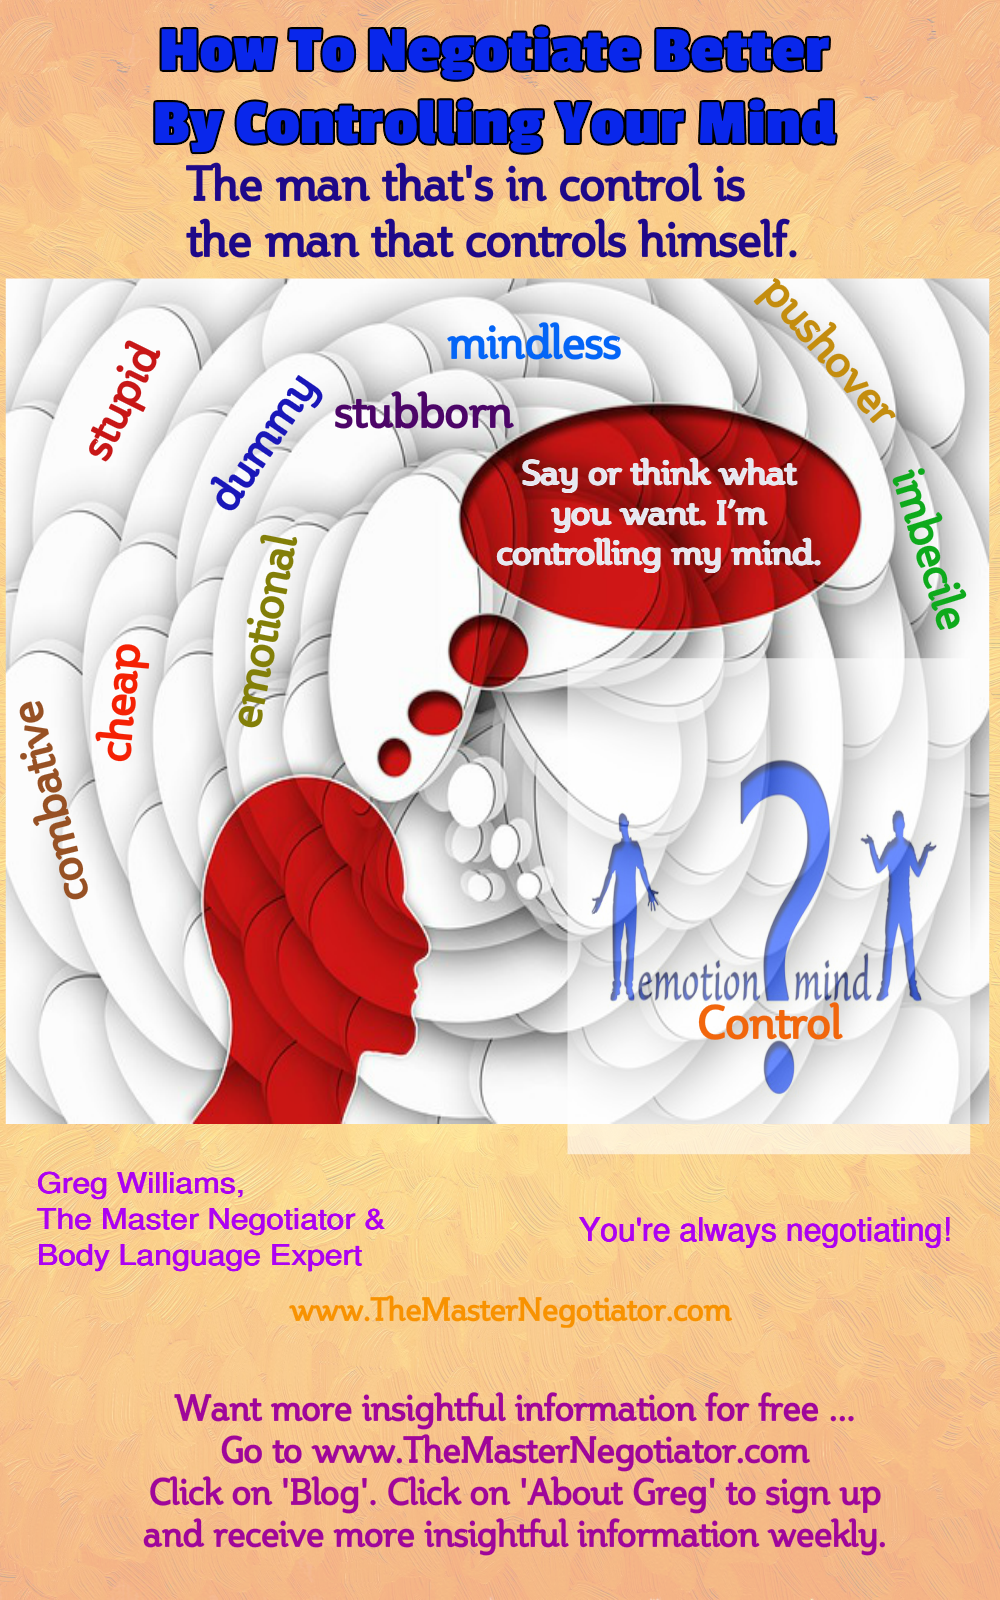 Negotiate Better By Controlling Your Mind